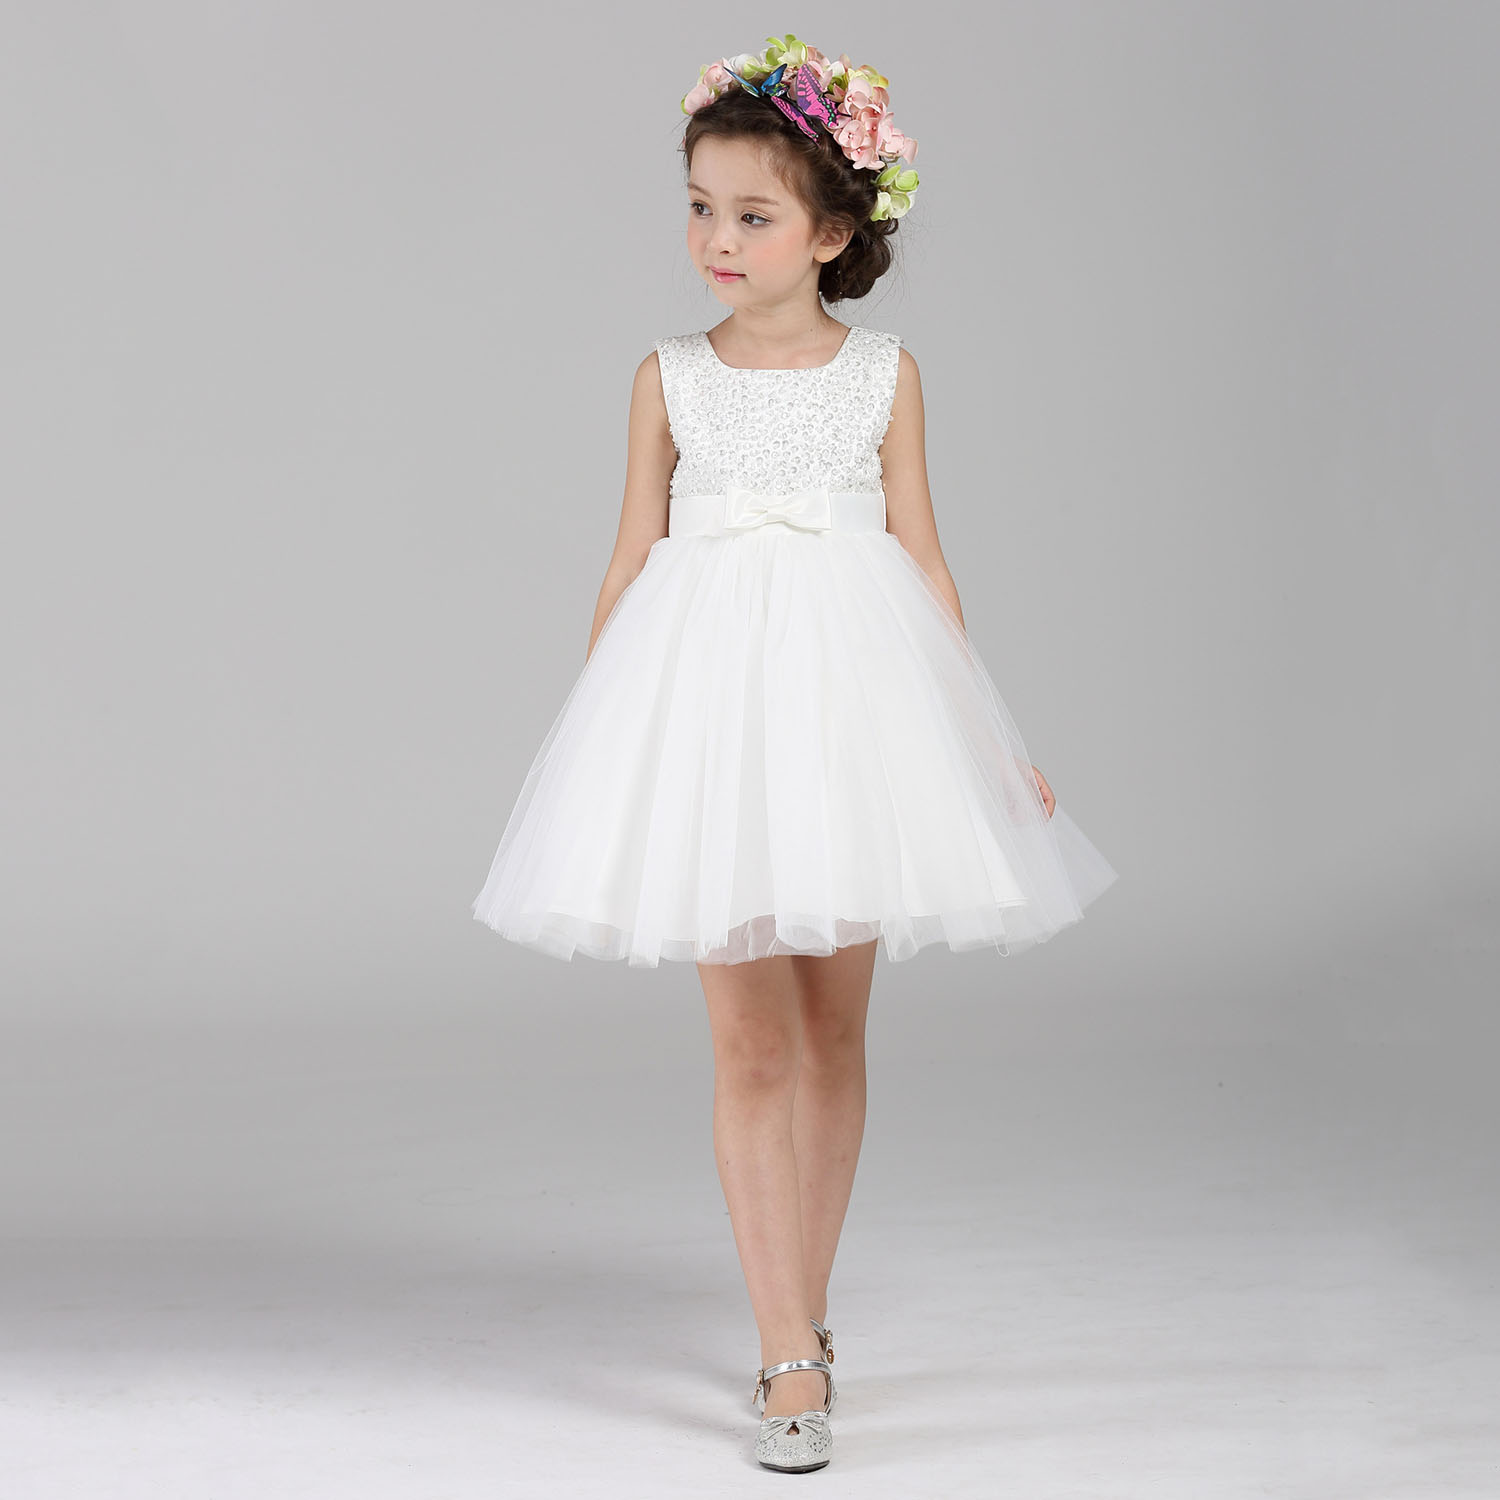 749a21dd9b44 White Flower Girl Dresses Sale